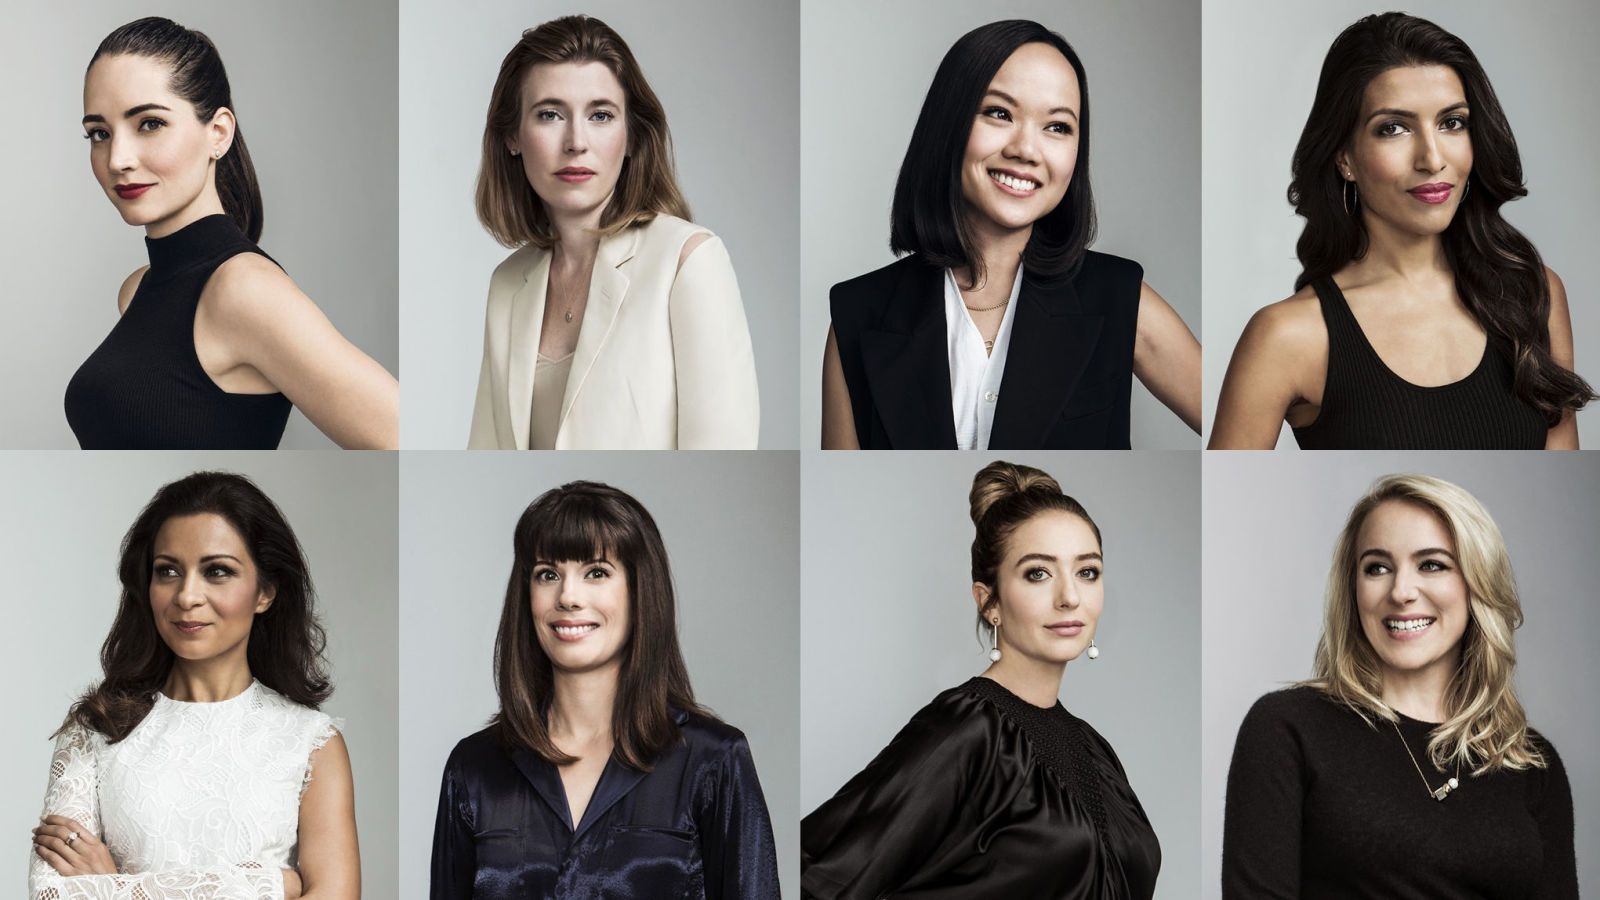 Meet ELLE's 2016 Women in Tech